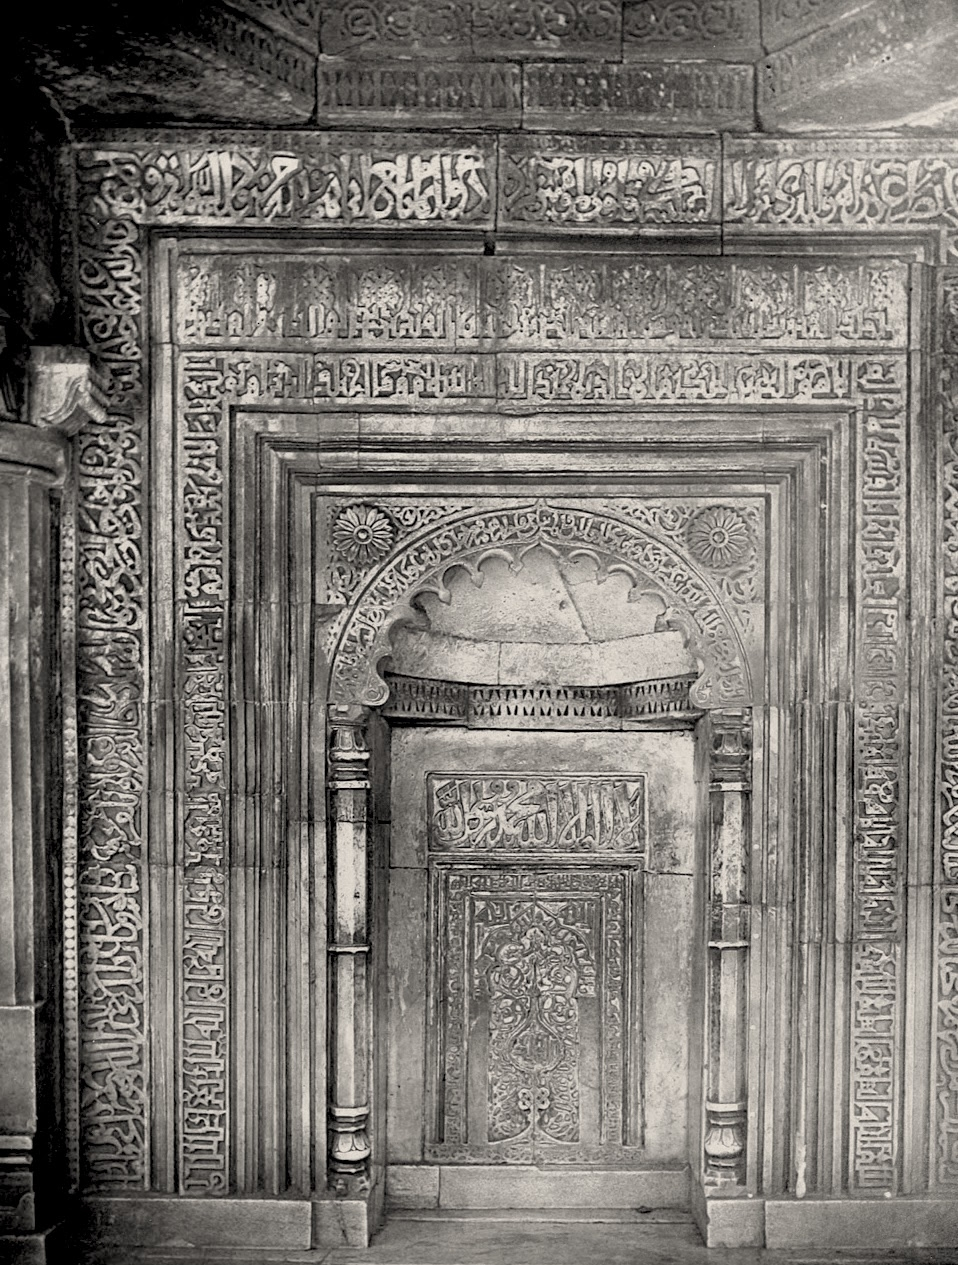 The Tomb called 'Sultan Ghori.' Niche in the tomb